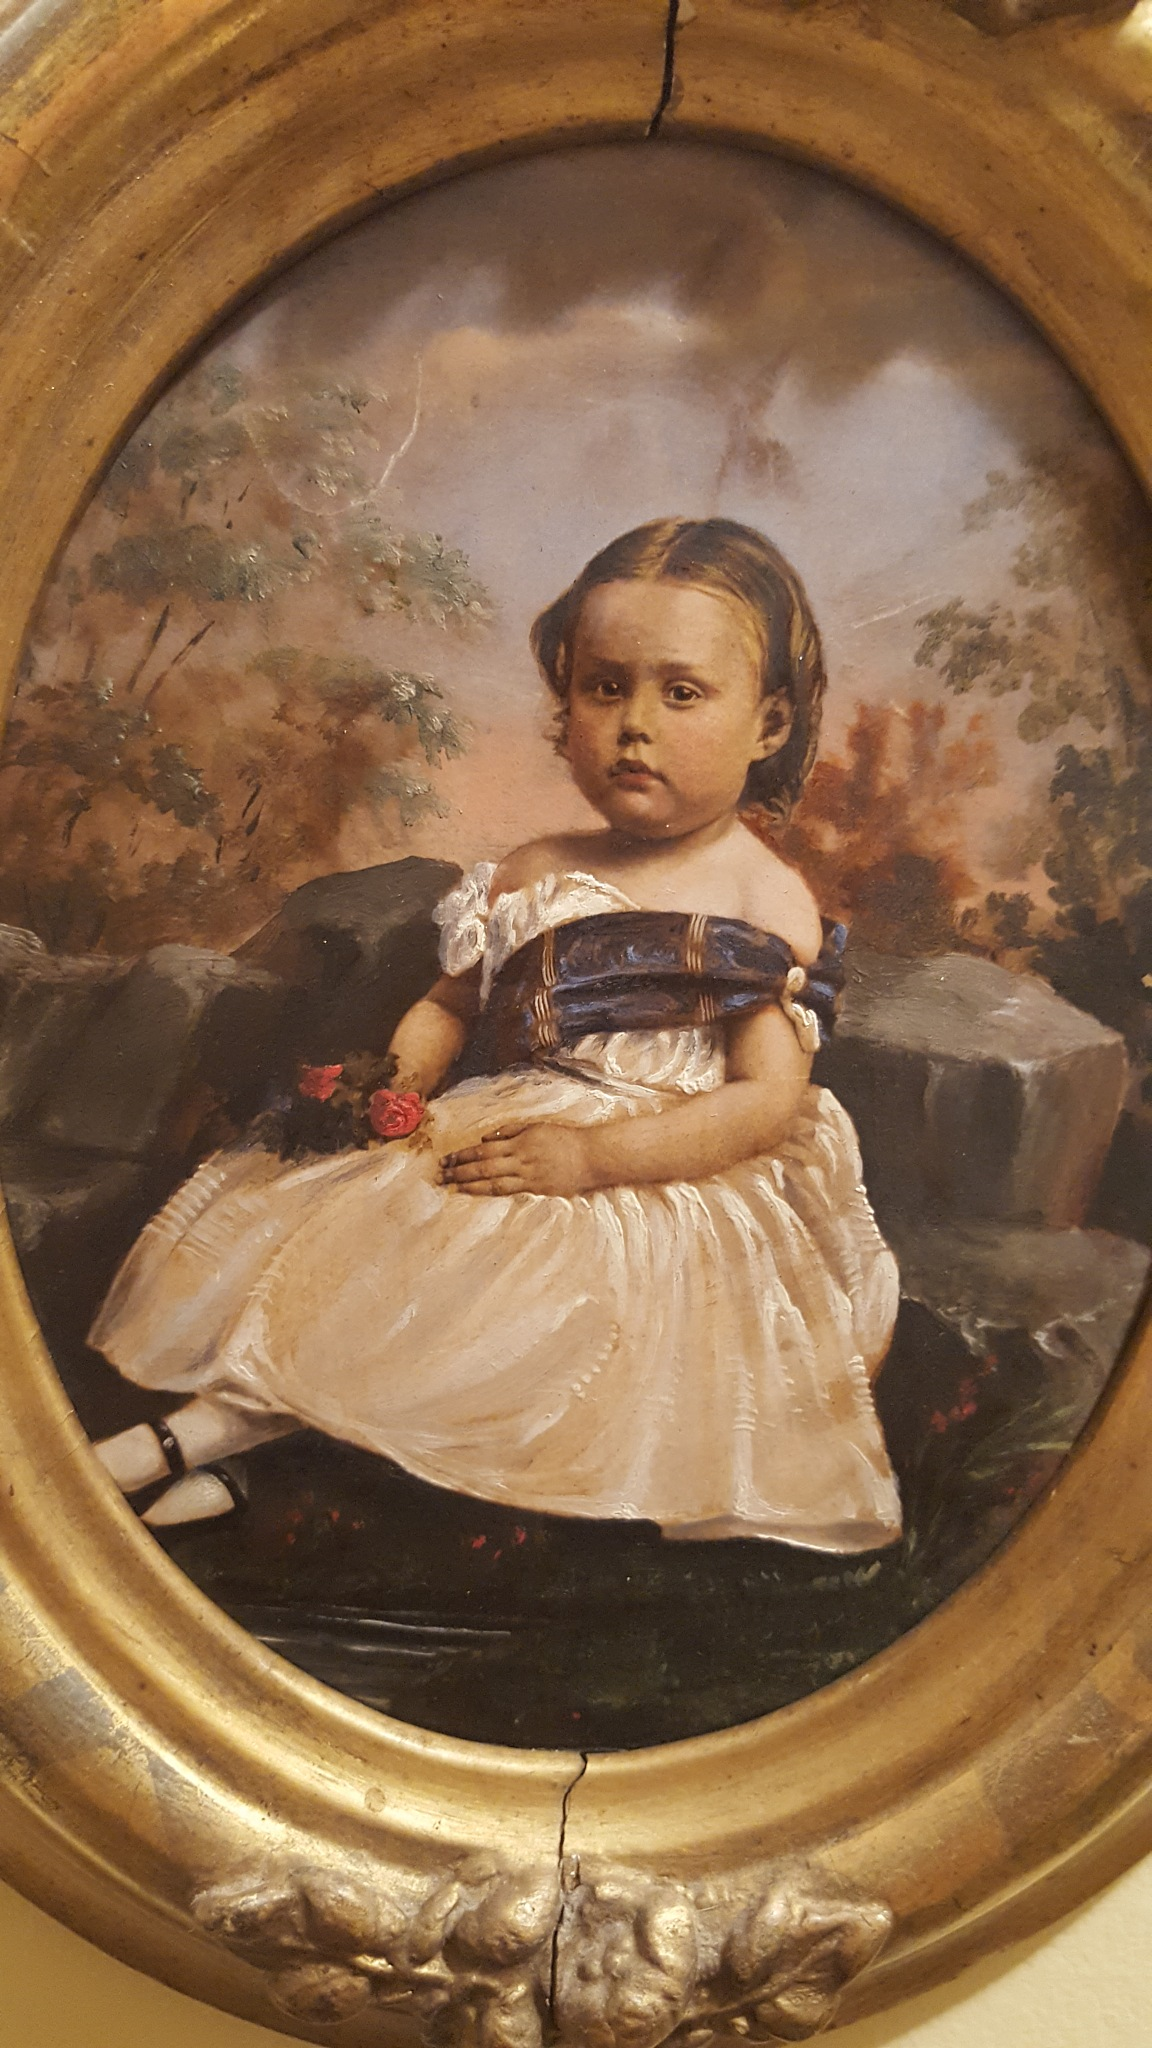 old oil painting 1890 by J B Armstrong